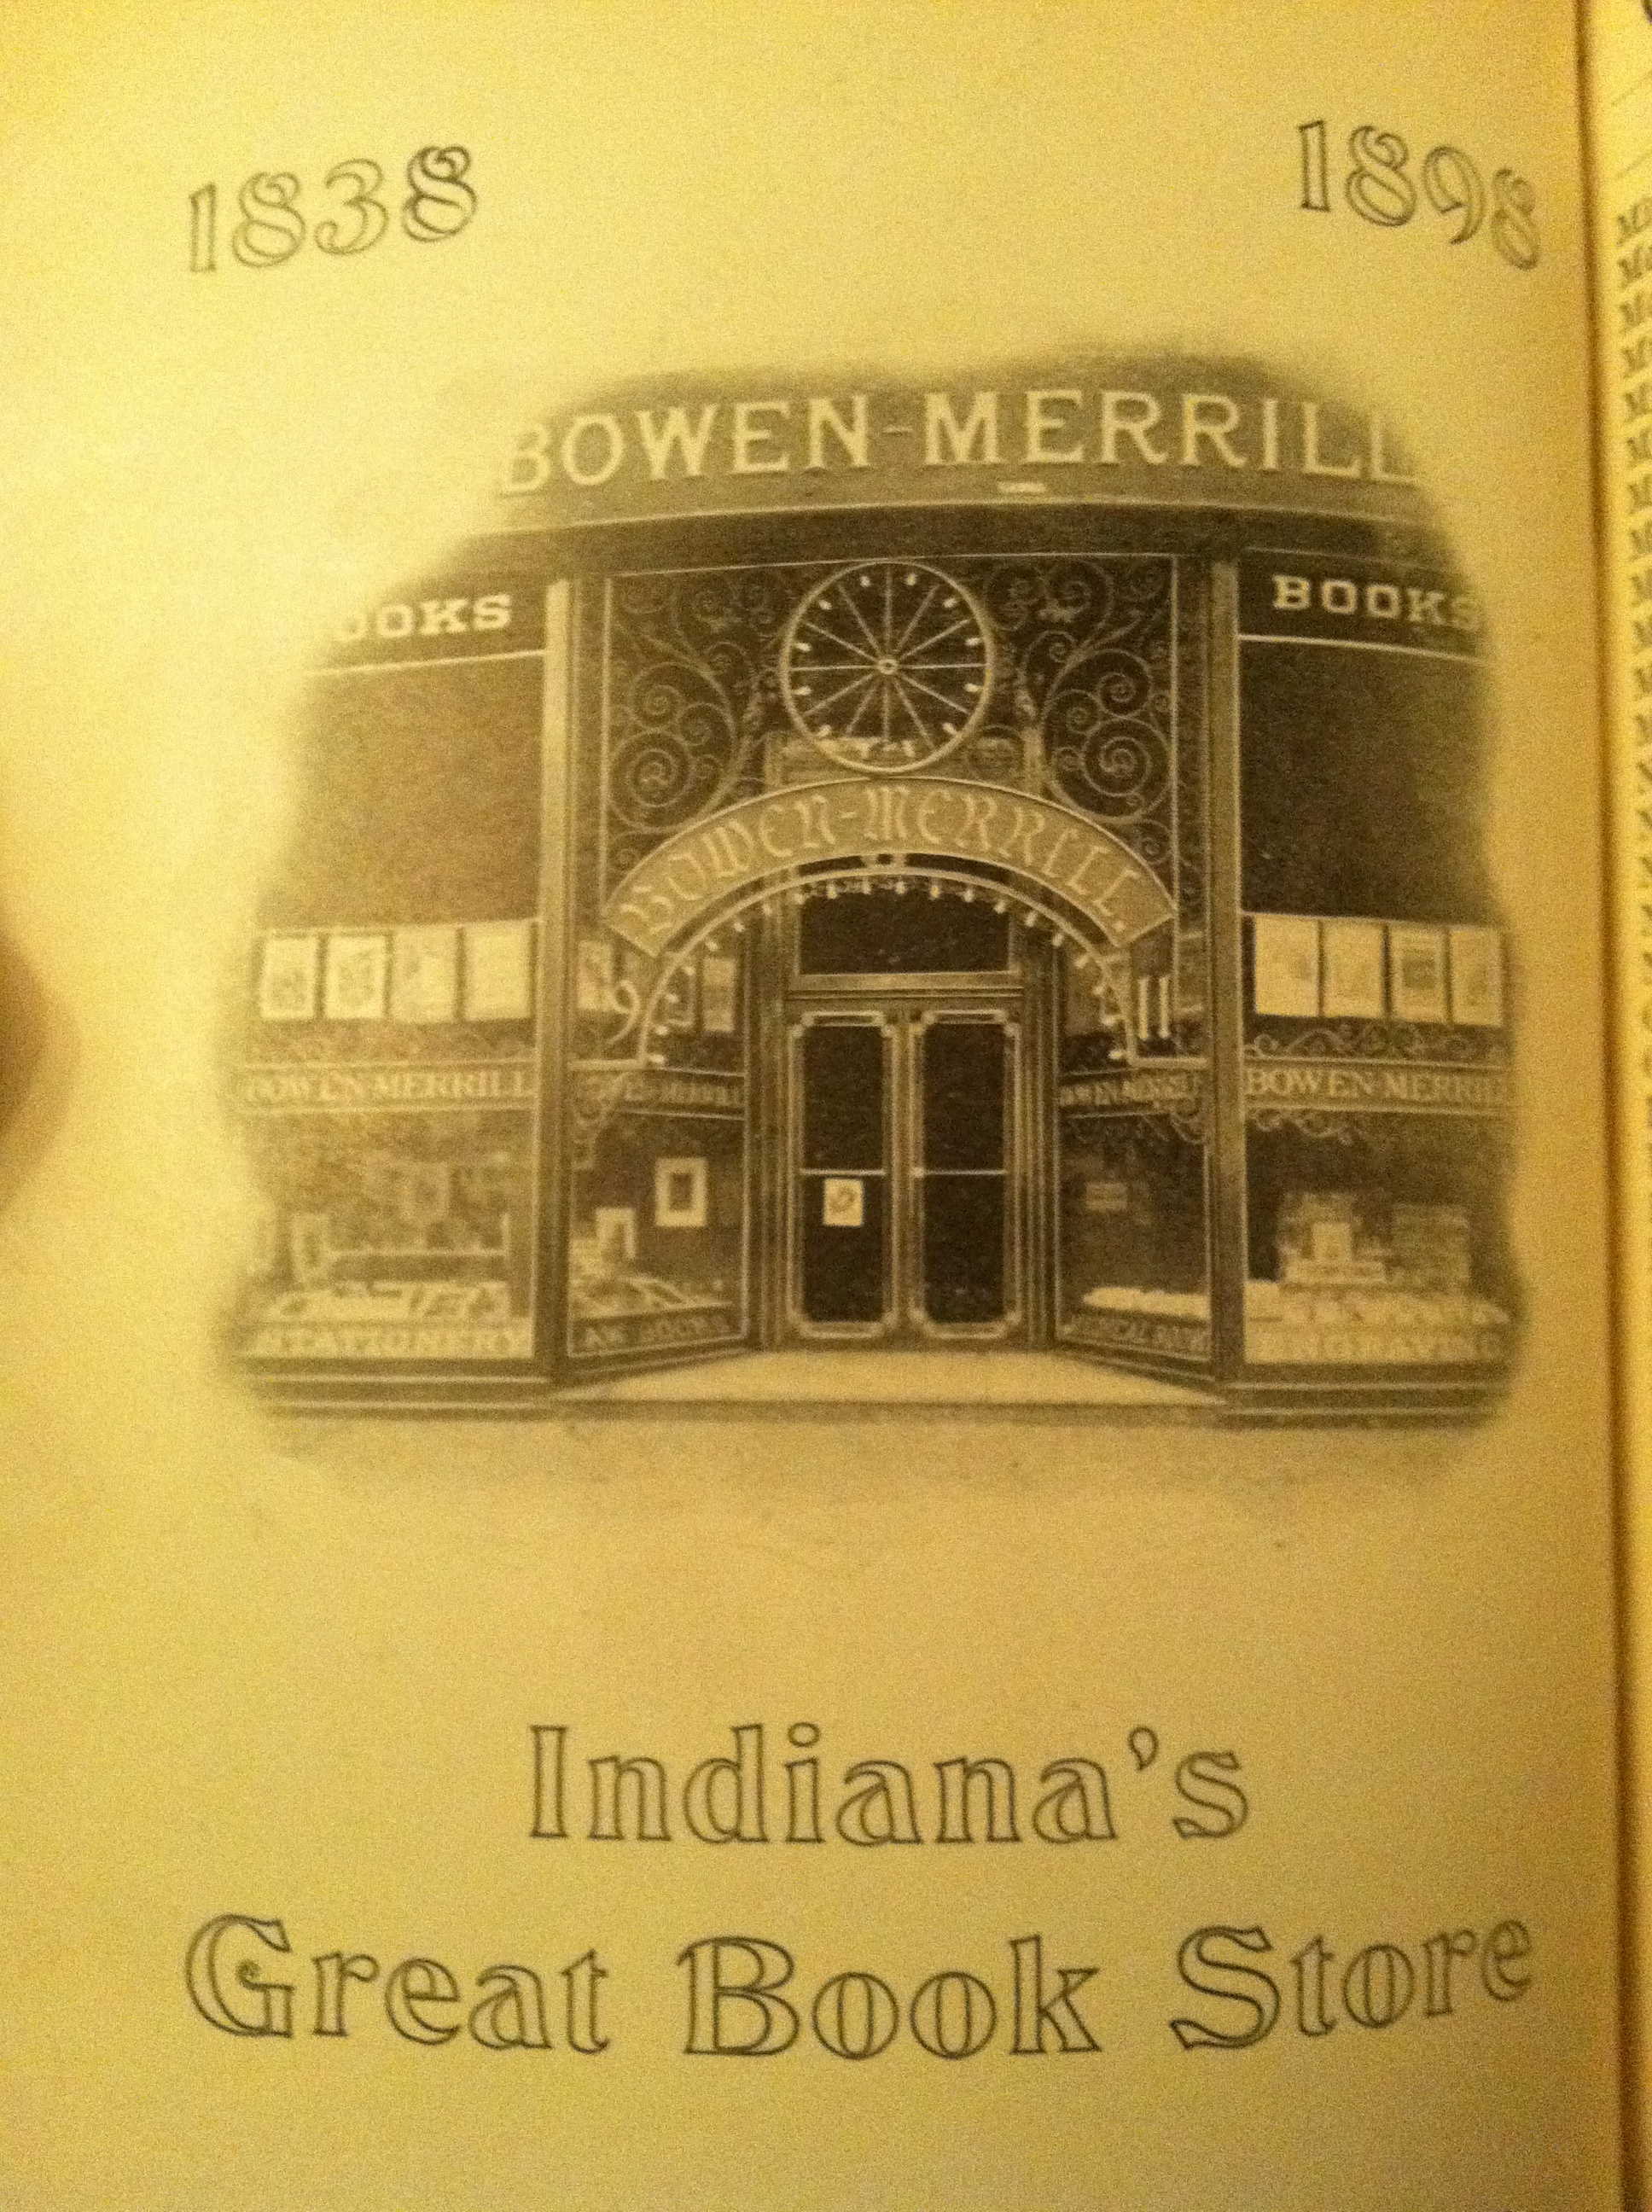 Sunday Adverts: Merrill & Co. The Cornerstone of Indy's Once Booming Book Industry